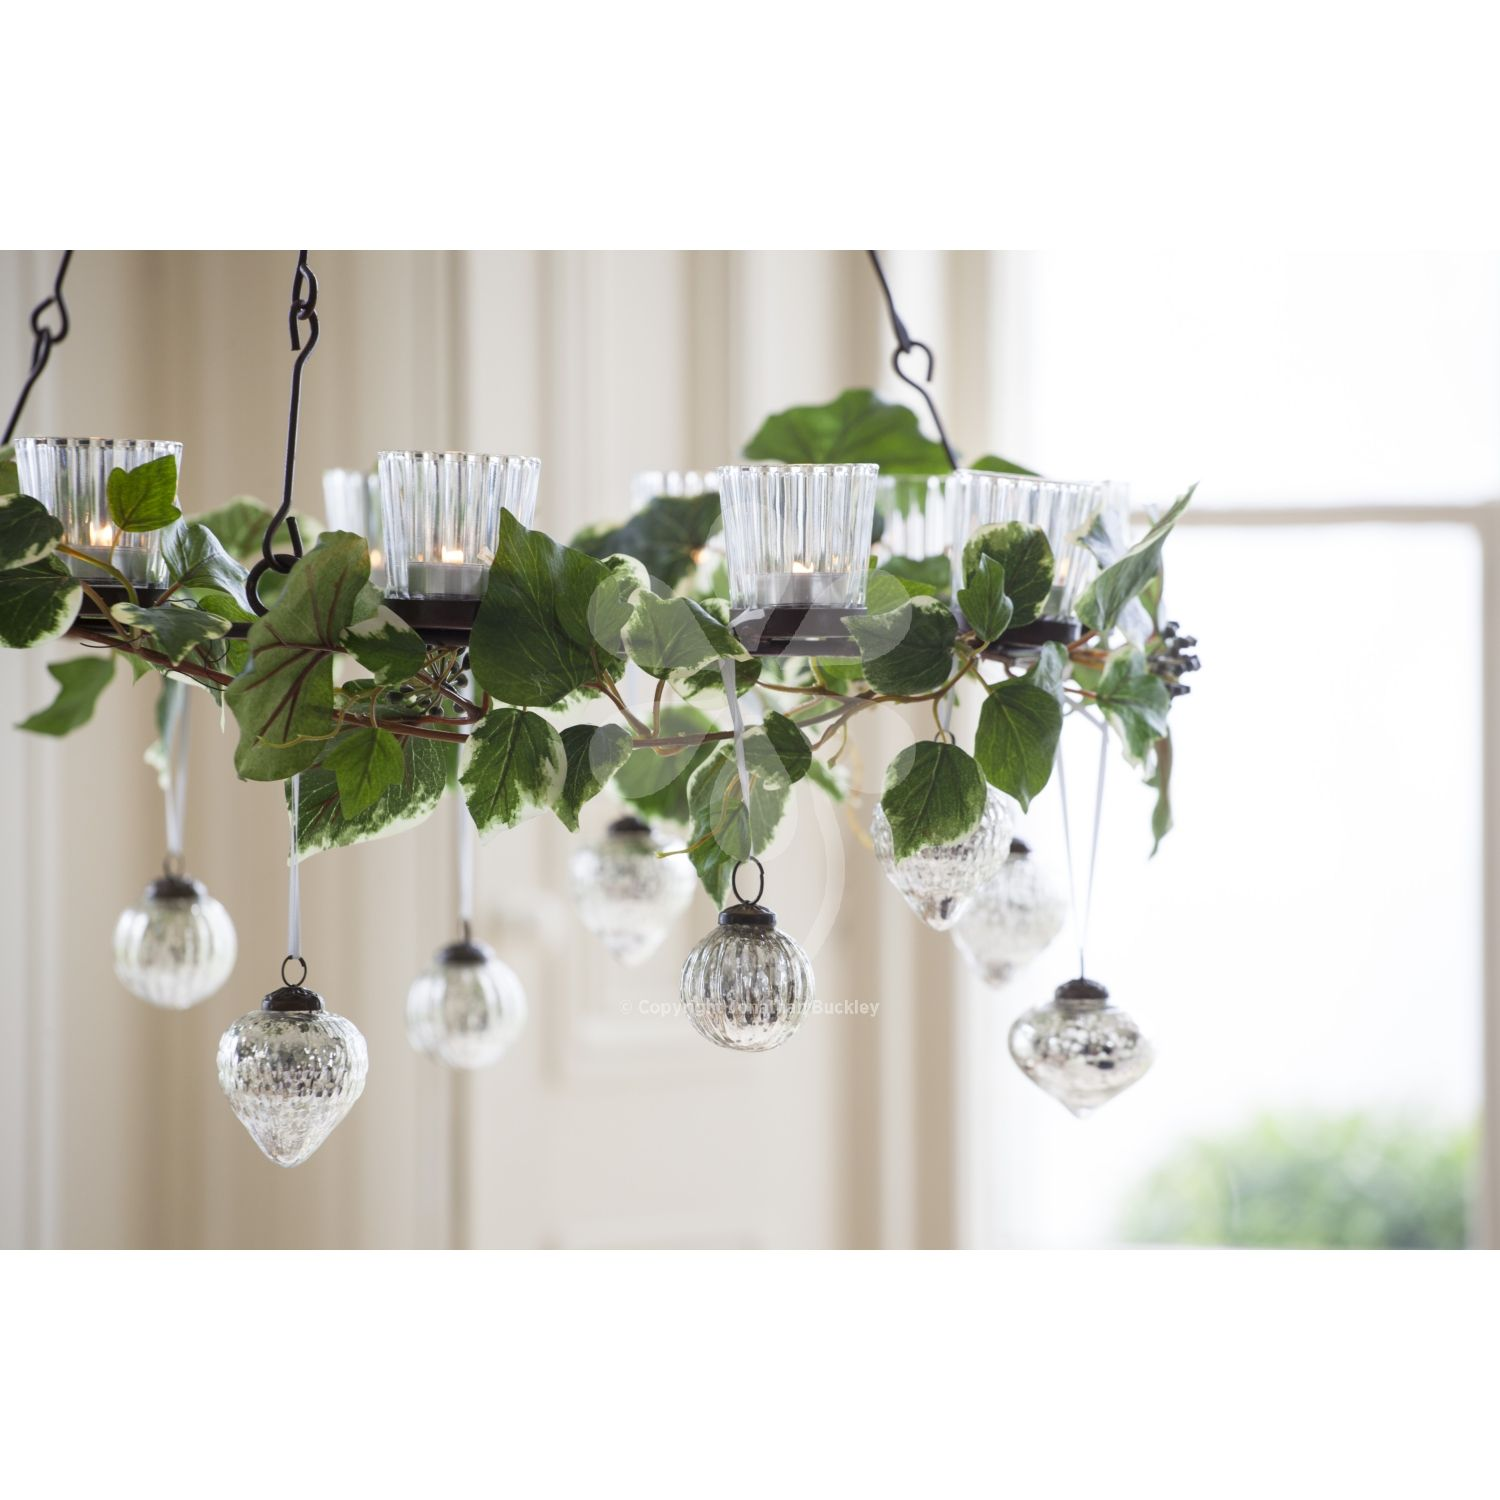 Tealight chandelier chandeliers decorating and small gardens tealight chandelier aloadofball Gallery